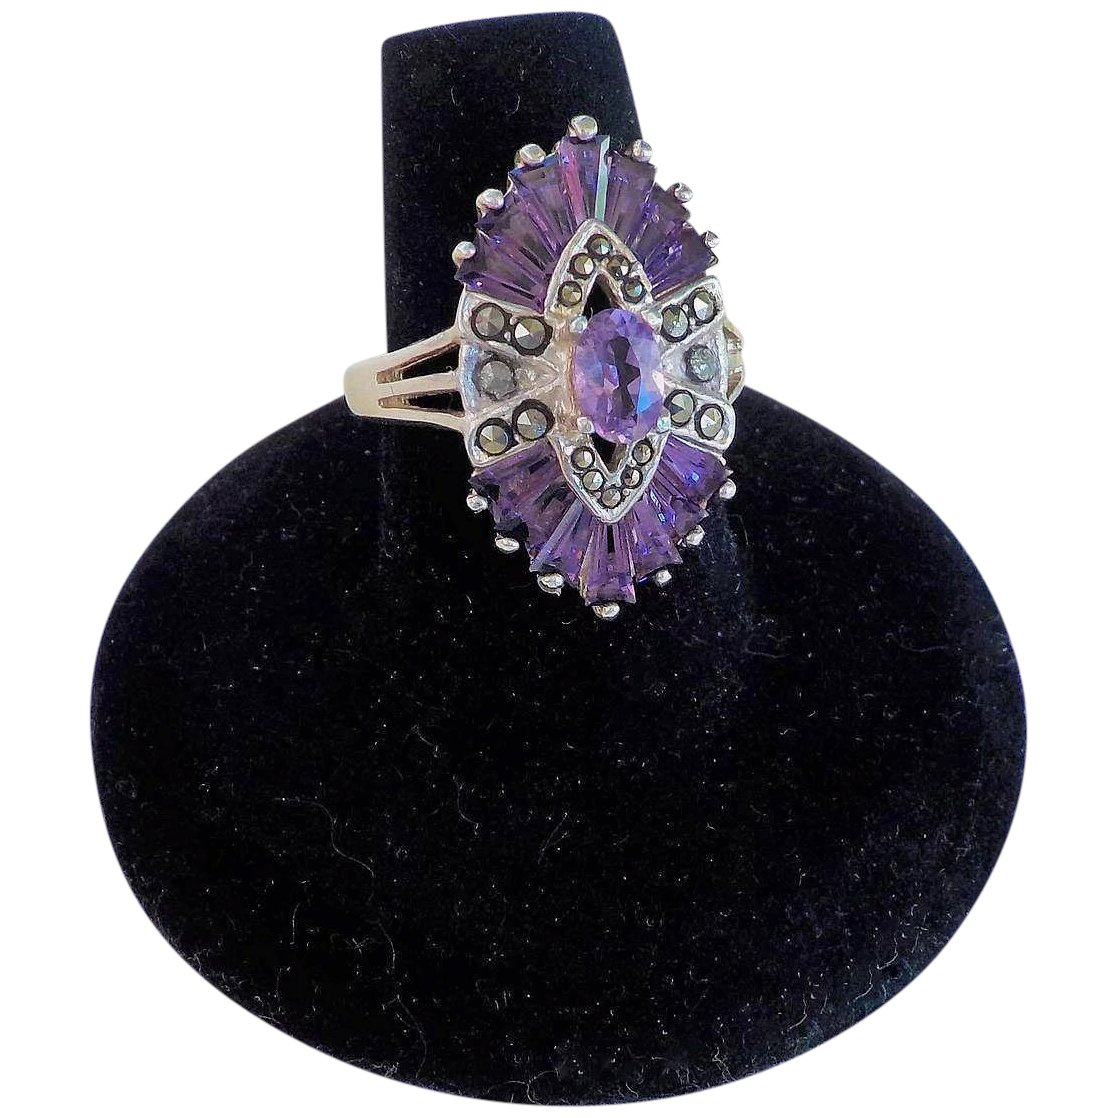 Size O Beautiful 925 Sterling Silver Triple Facetted Amethyst and Marcasite Art Deco Ring